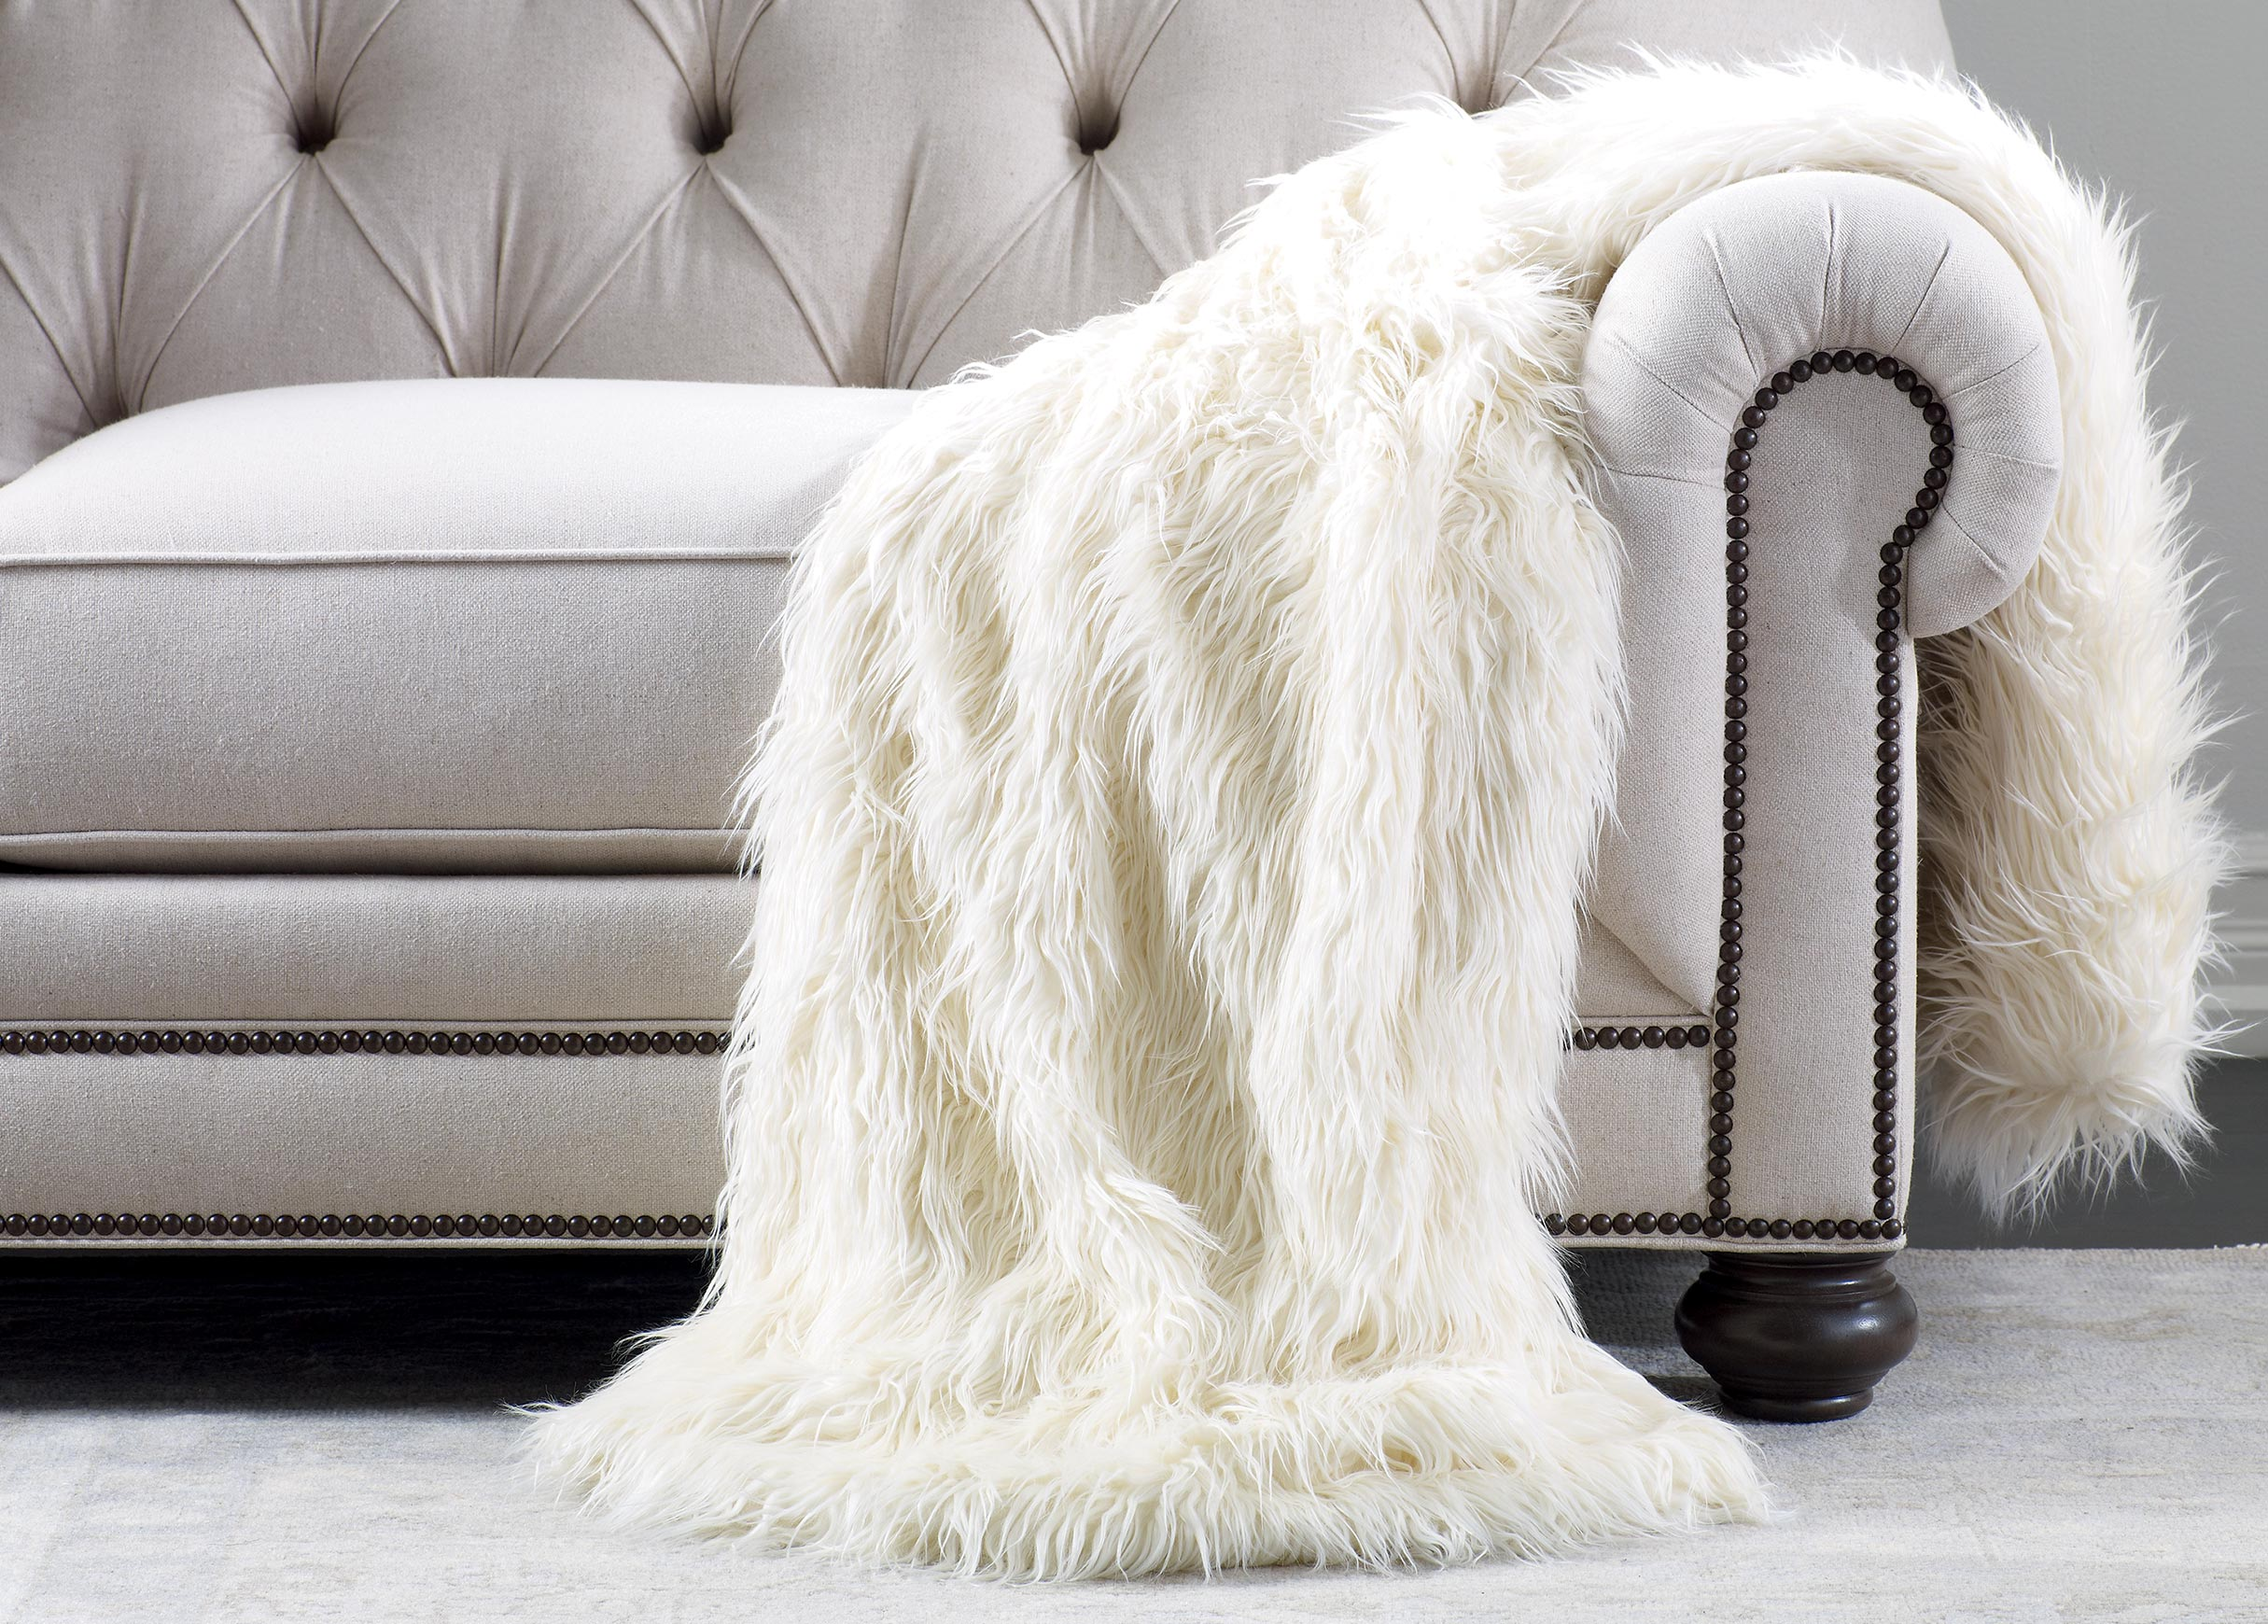 Laurel Park Embossed Faux Fur Throw Blanket & Bedspread - Luxurious Over-sized Faux Fur Bed Throw Blanket Product - DaDa Bedding Luxury Rose Buds Blushing Luxe Soft Warm Cozy Plush Reversible Faux Fur Sherpa Backside Fleece Throw Blanket - Bright Vibrant Embossed Textured Floral Solid Pink & White Back - 50